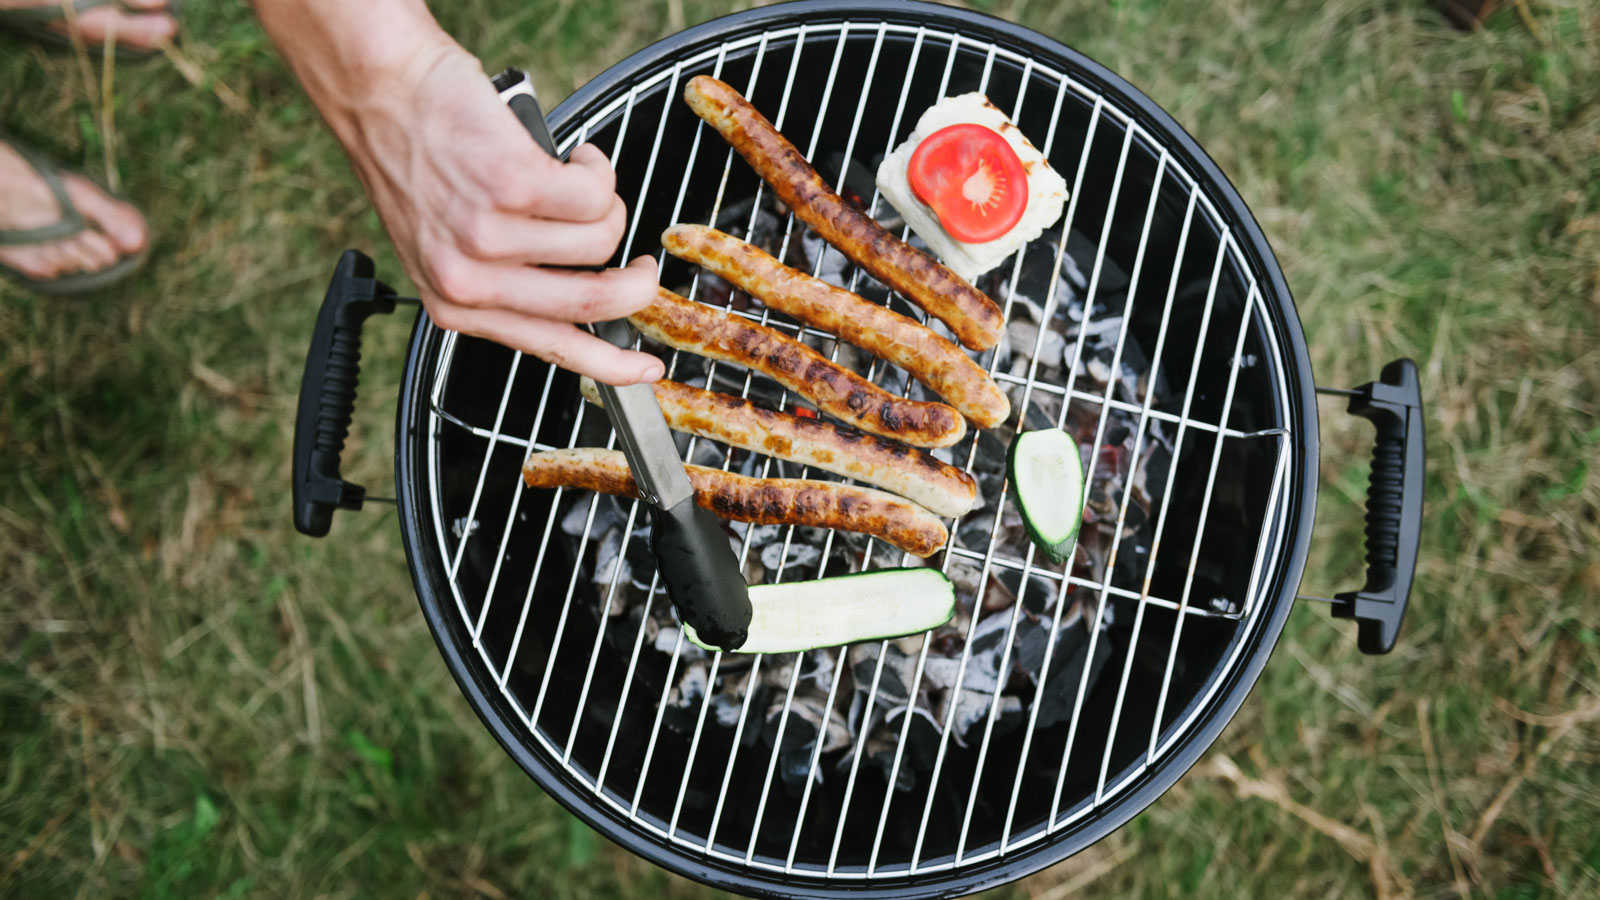 6 Grilling Dangers and How to Avoid Them